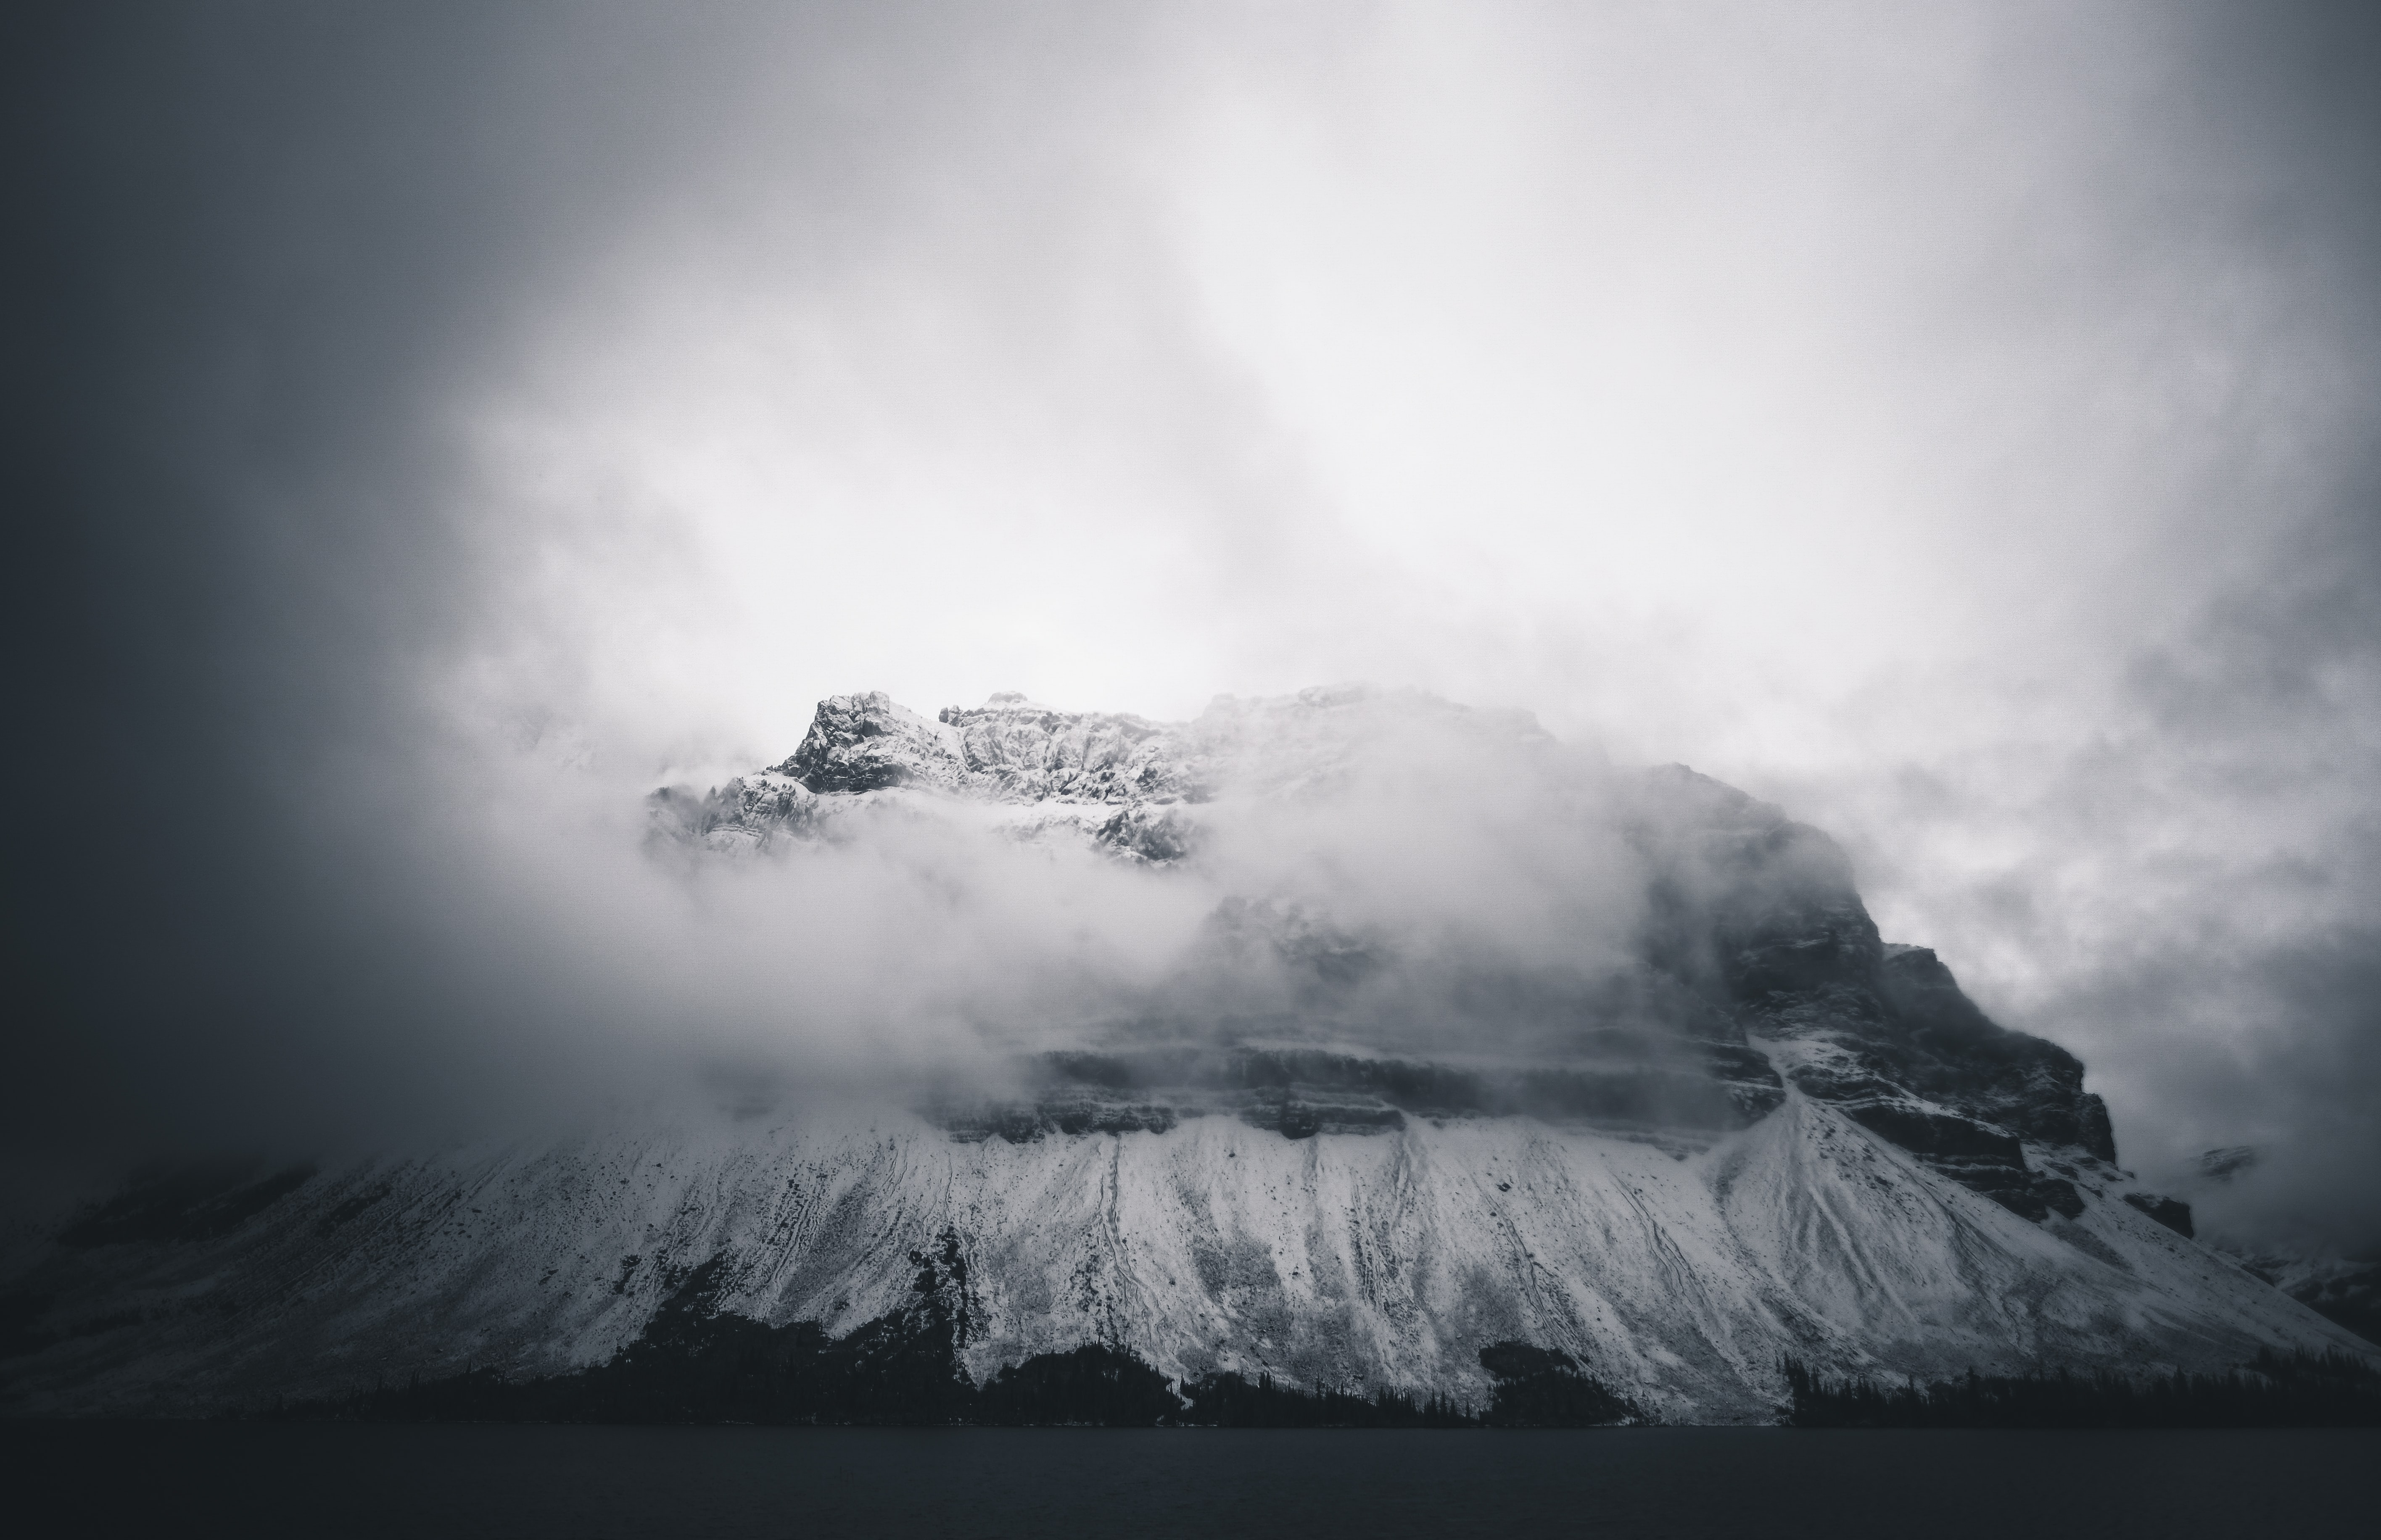 mountains cover with snow